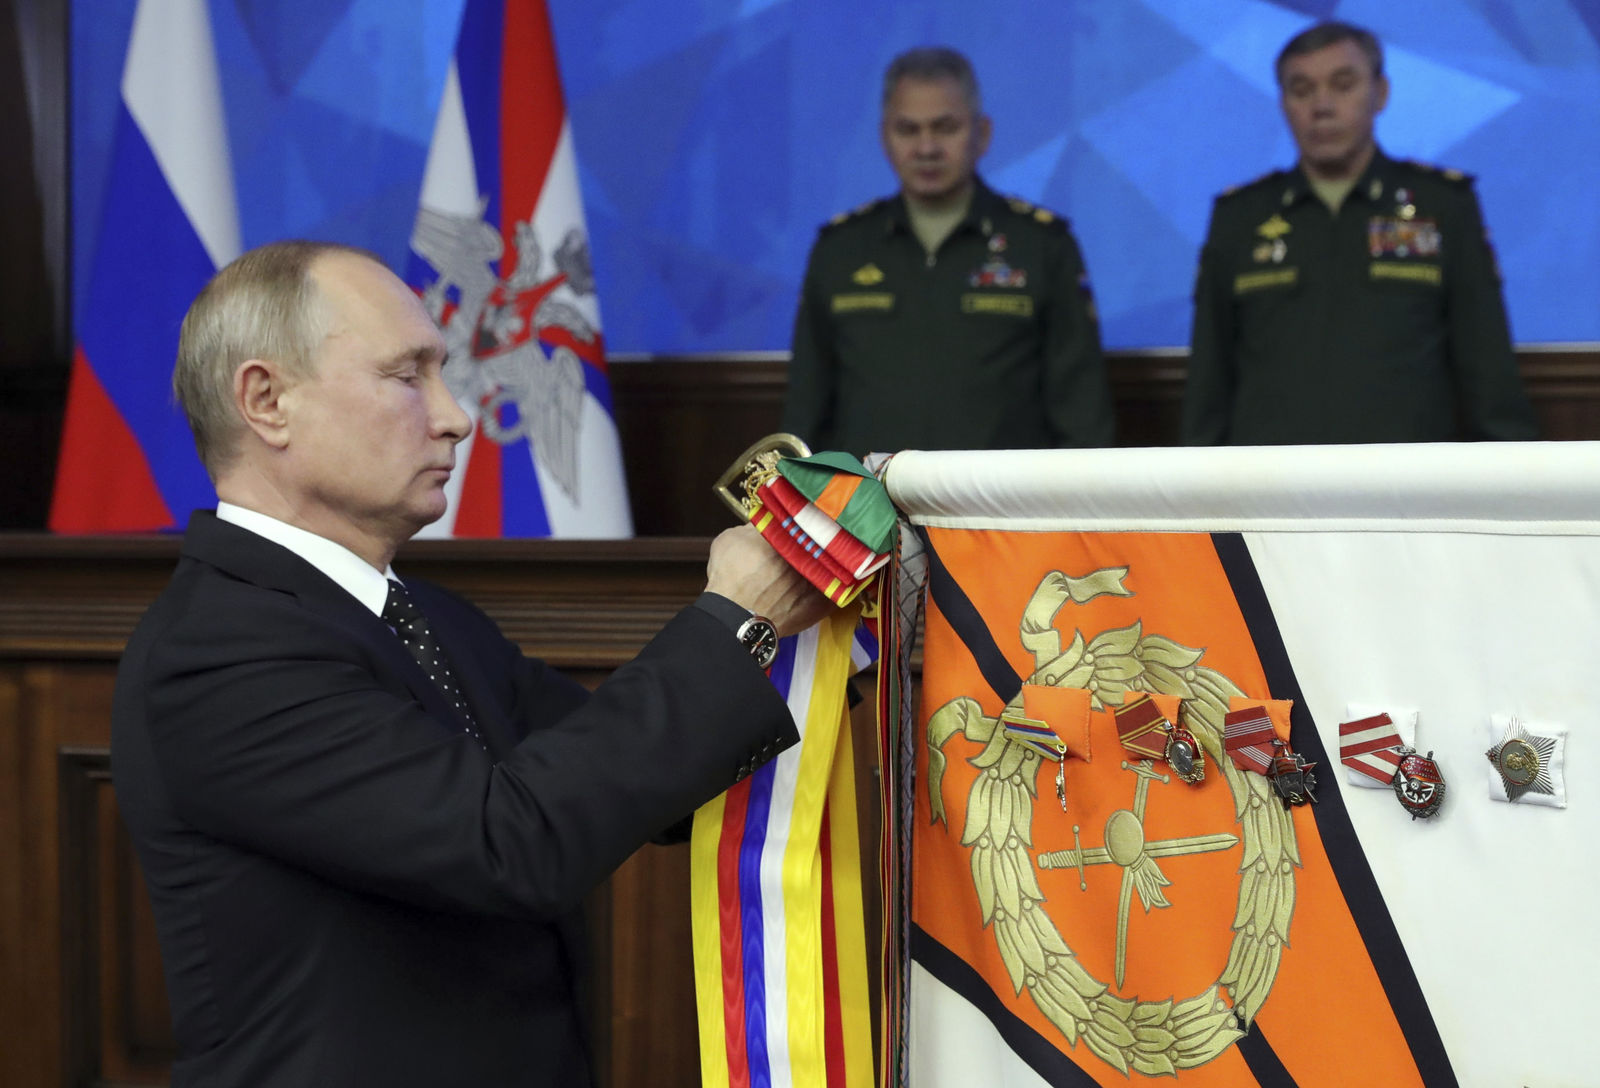 Russian President Vladimir Putin, left, pins a medal on a military banner during a meeting with the top military staff in the Russian Defense Ministry's headquarters in Moscow, Russia, Tuesday, Dec. 18, 2018. Putin said that new Russian weapons have no foreign equivalents, helping ensure the nation's security for decades to come. (Mikhail Klimentyev, Sputnik, Kremlin Pool Photo via AP)